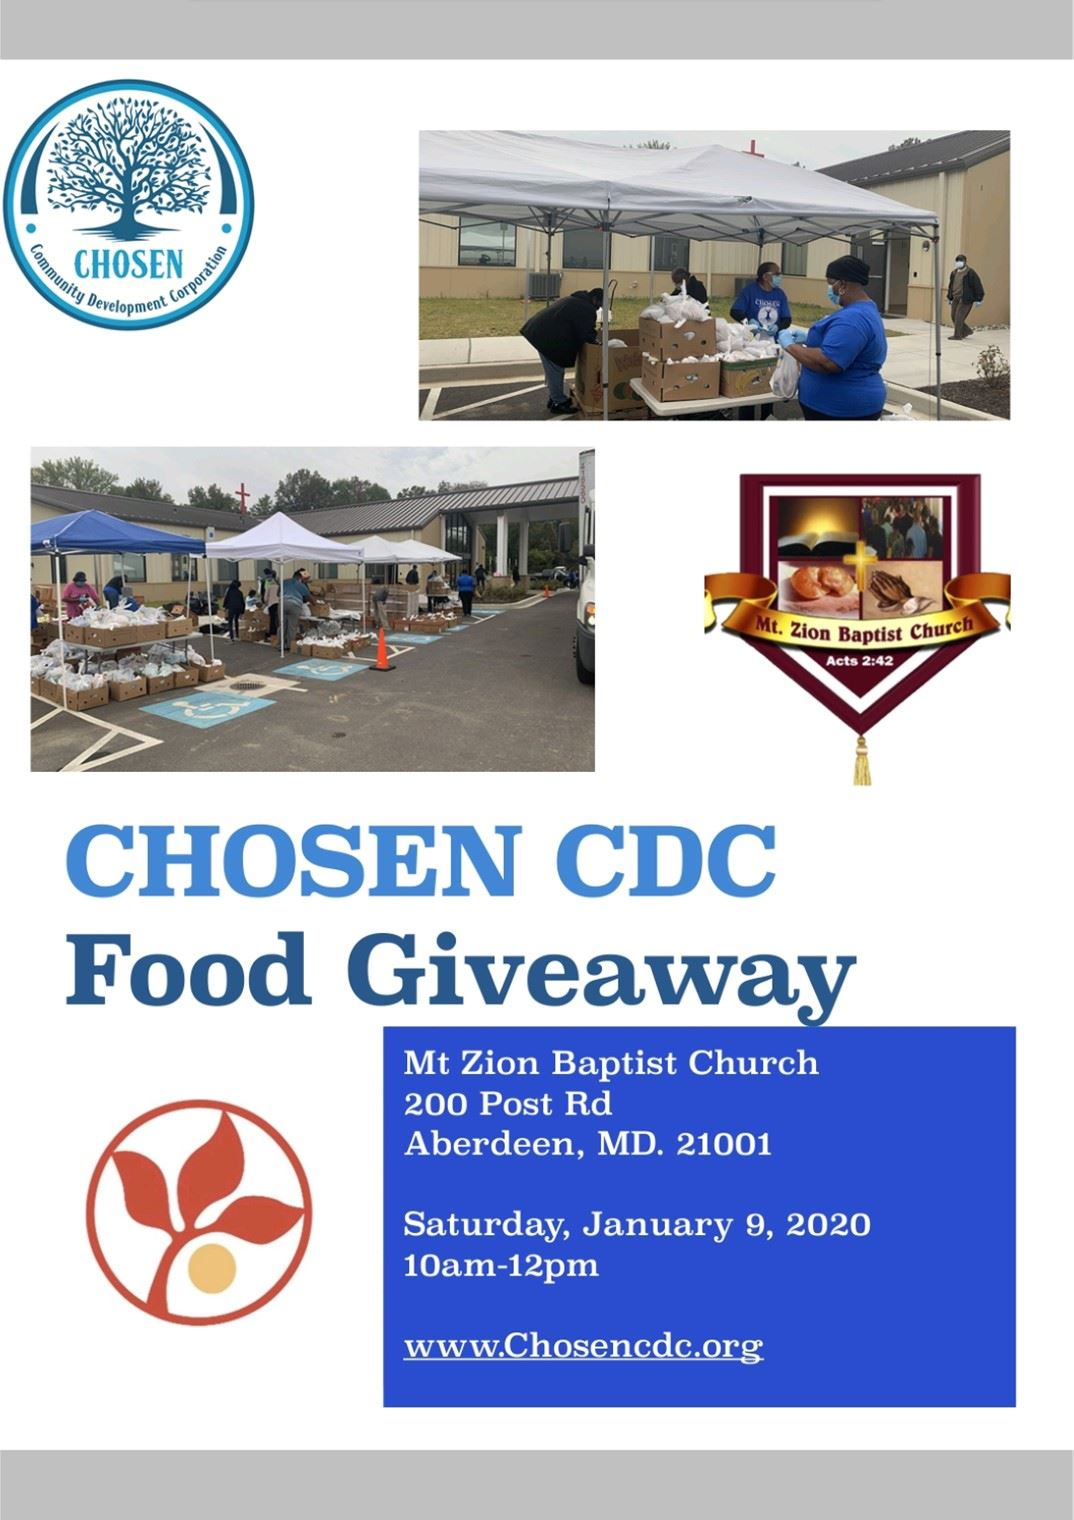 Chosen Development Corporation Food Giveaway